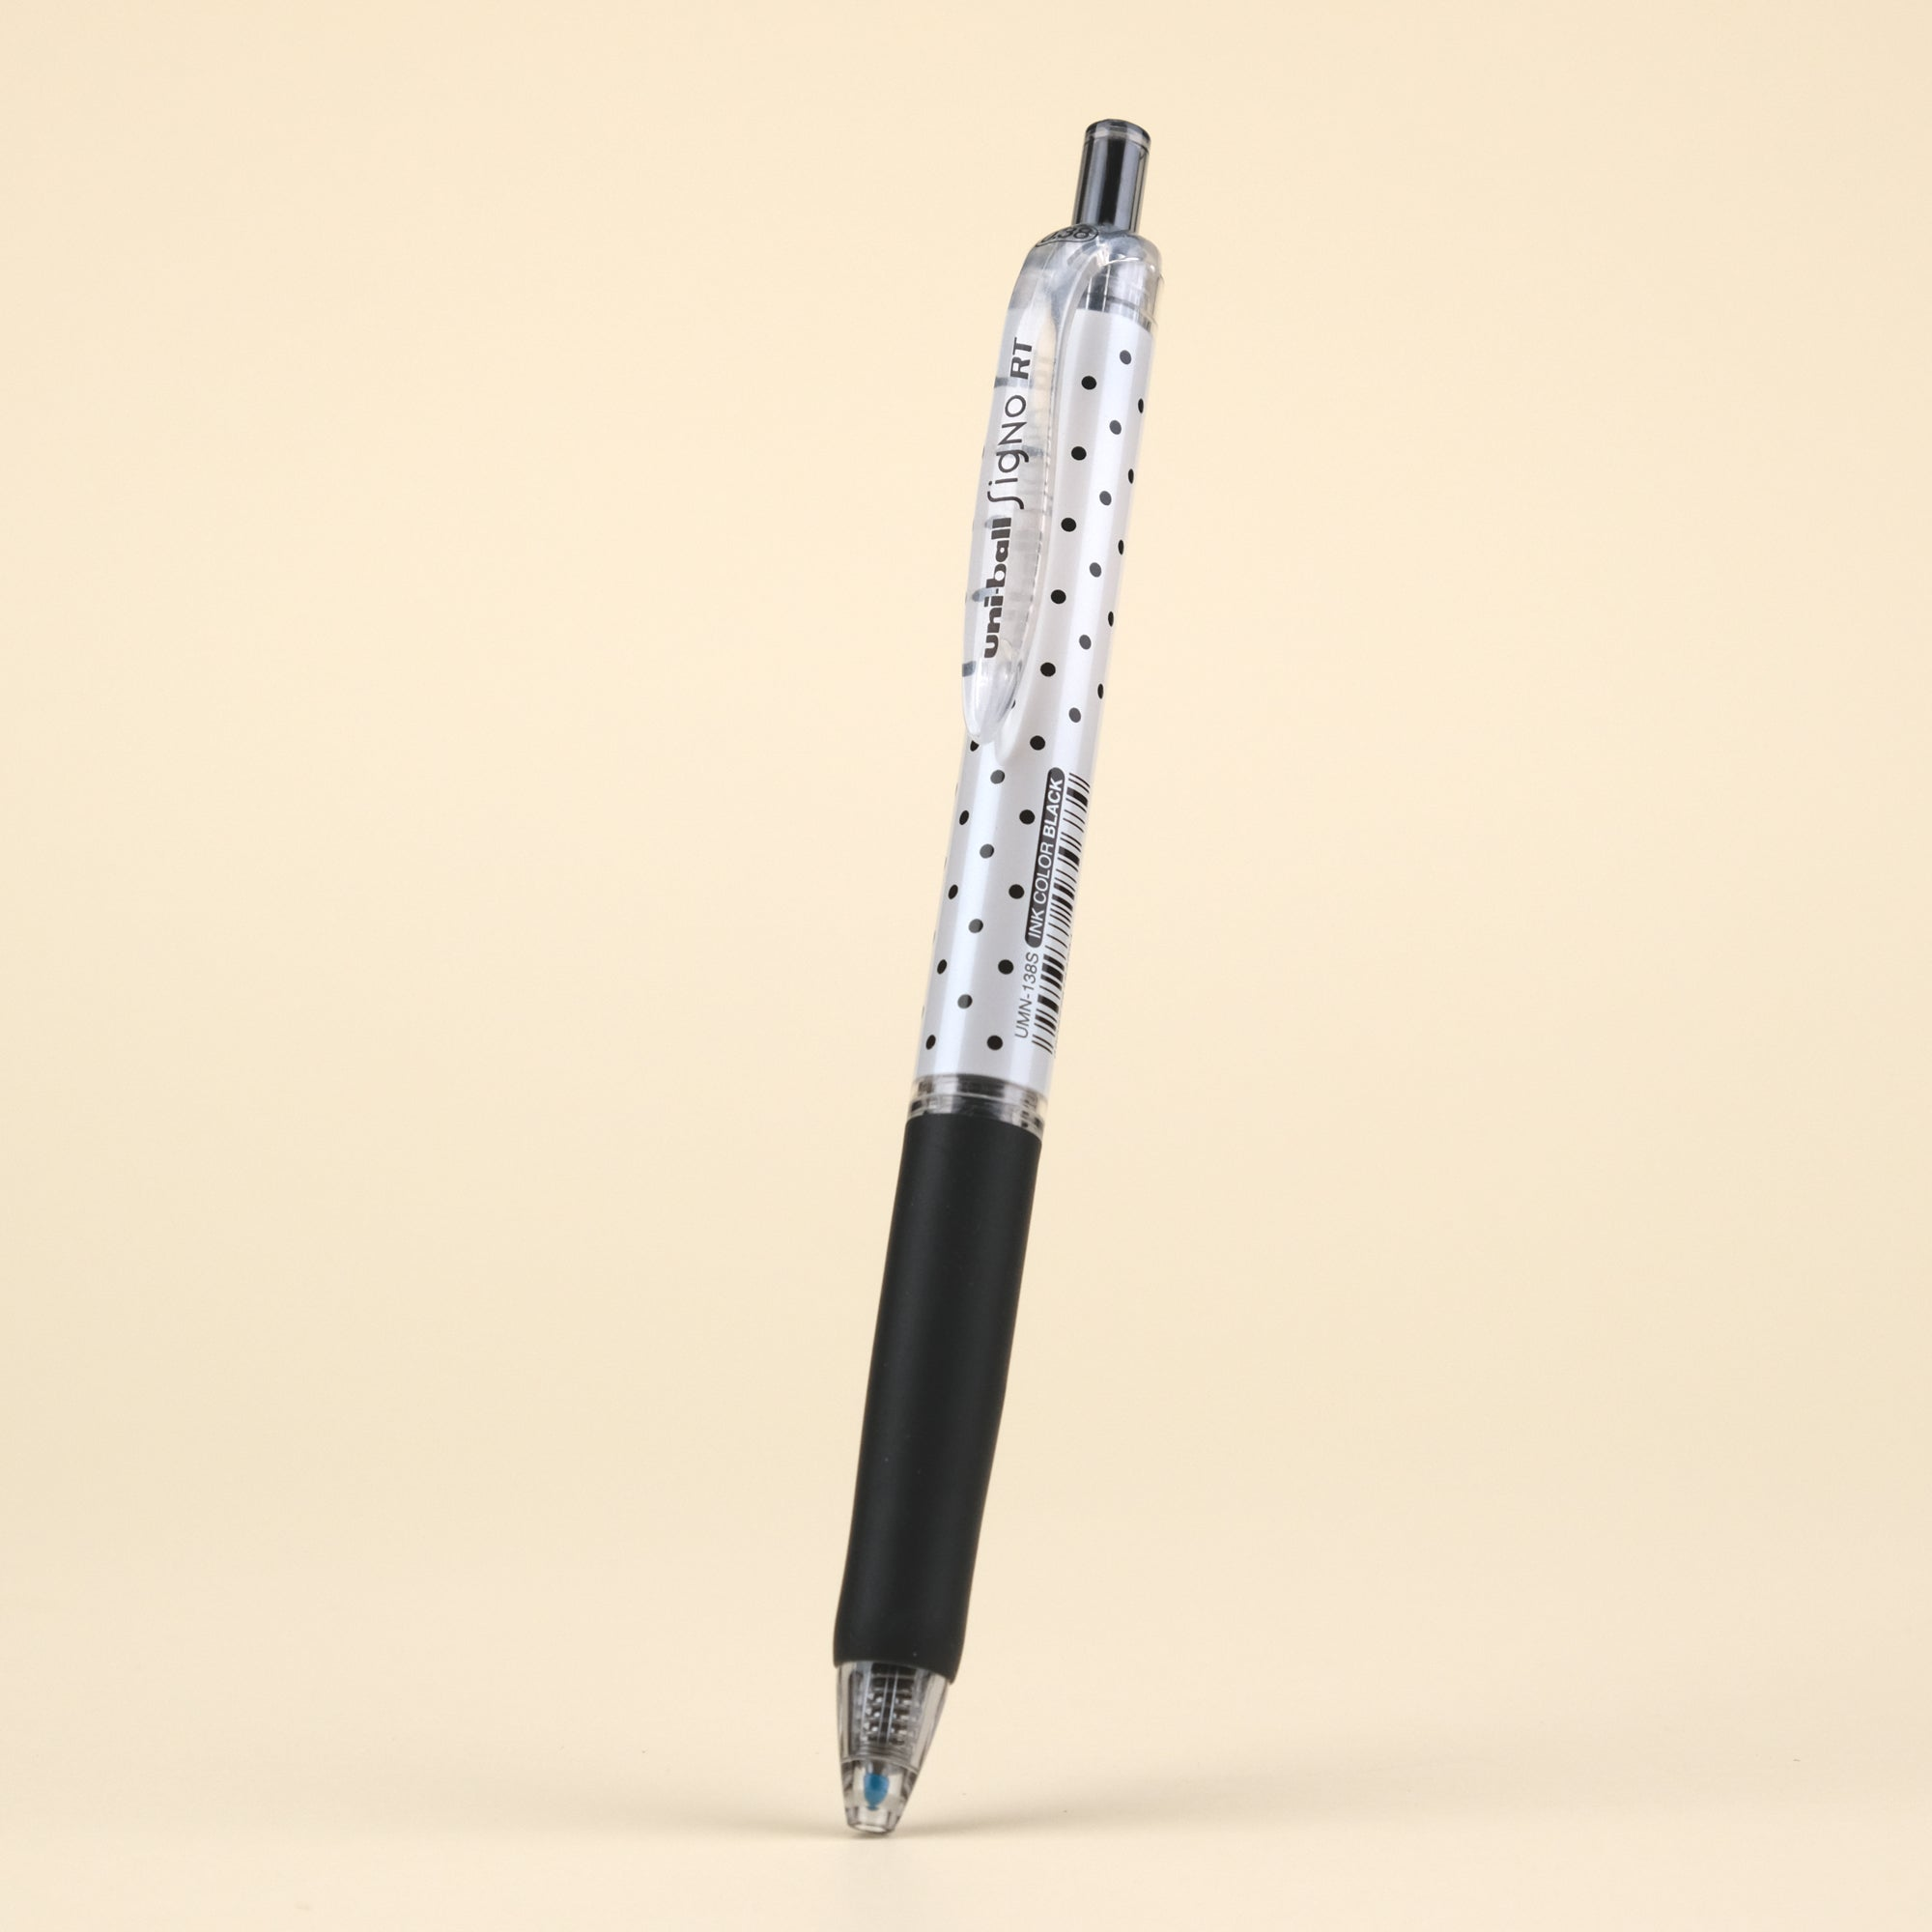 Uni-ball Signo RT Gel Ink Pen Limited Edition - Black Polka Dot - 0.38 mm